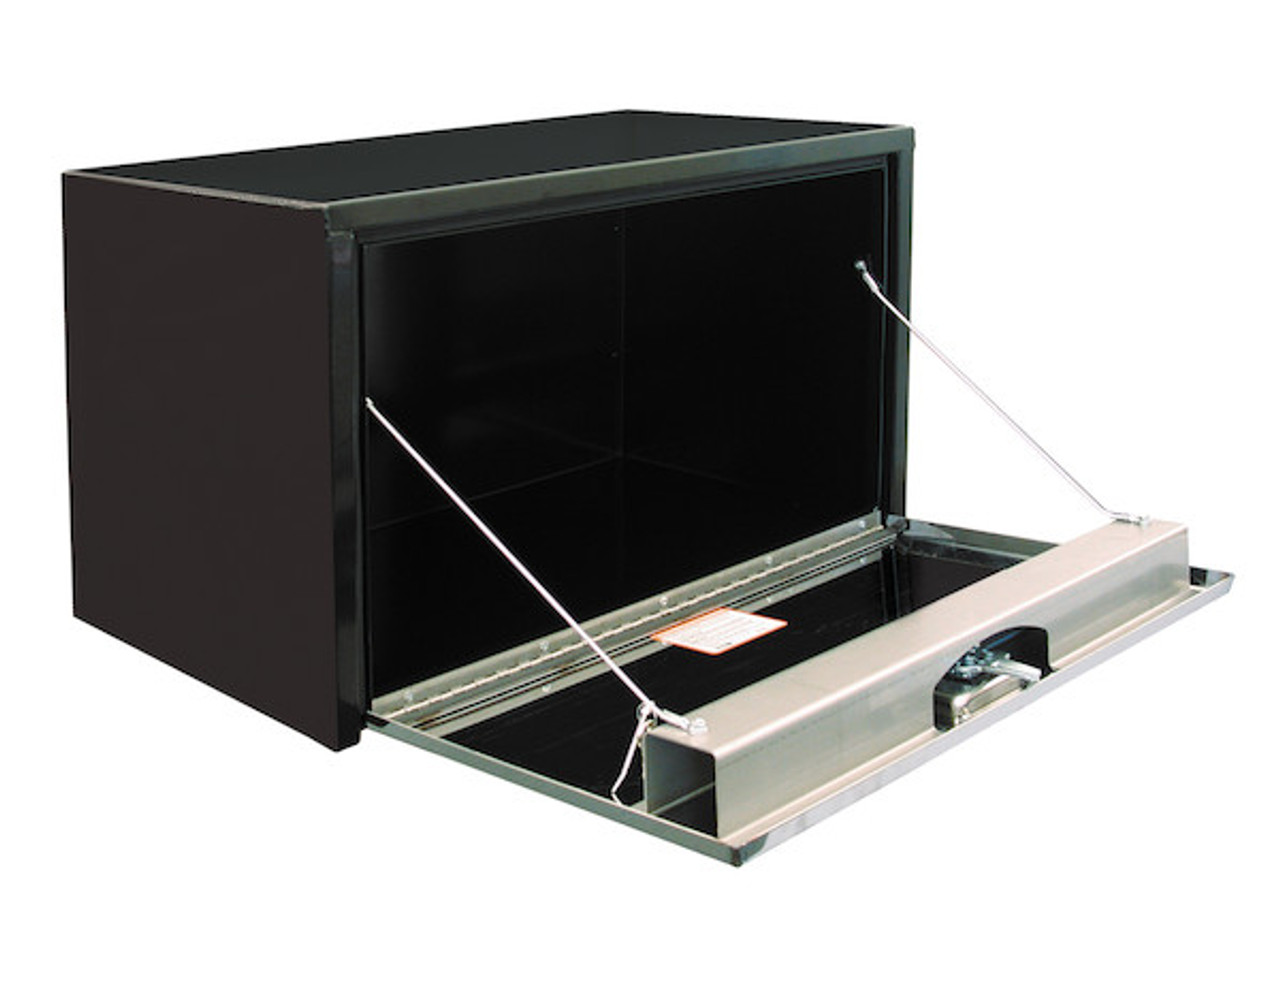 1704705 BUYERS PRODUCTS BLACK STEEL UNDERBODY TRUCK BOX WITH STAINLESS STEEL DOOR TOOLBOX